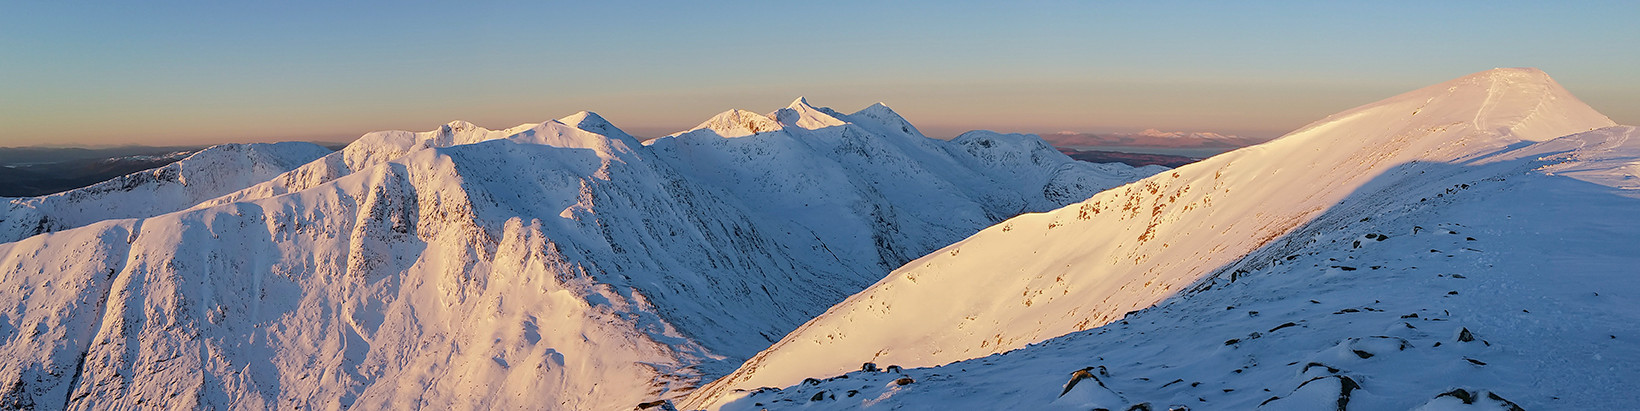 Panoramic Cruachan Ridge